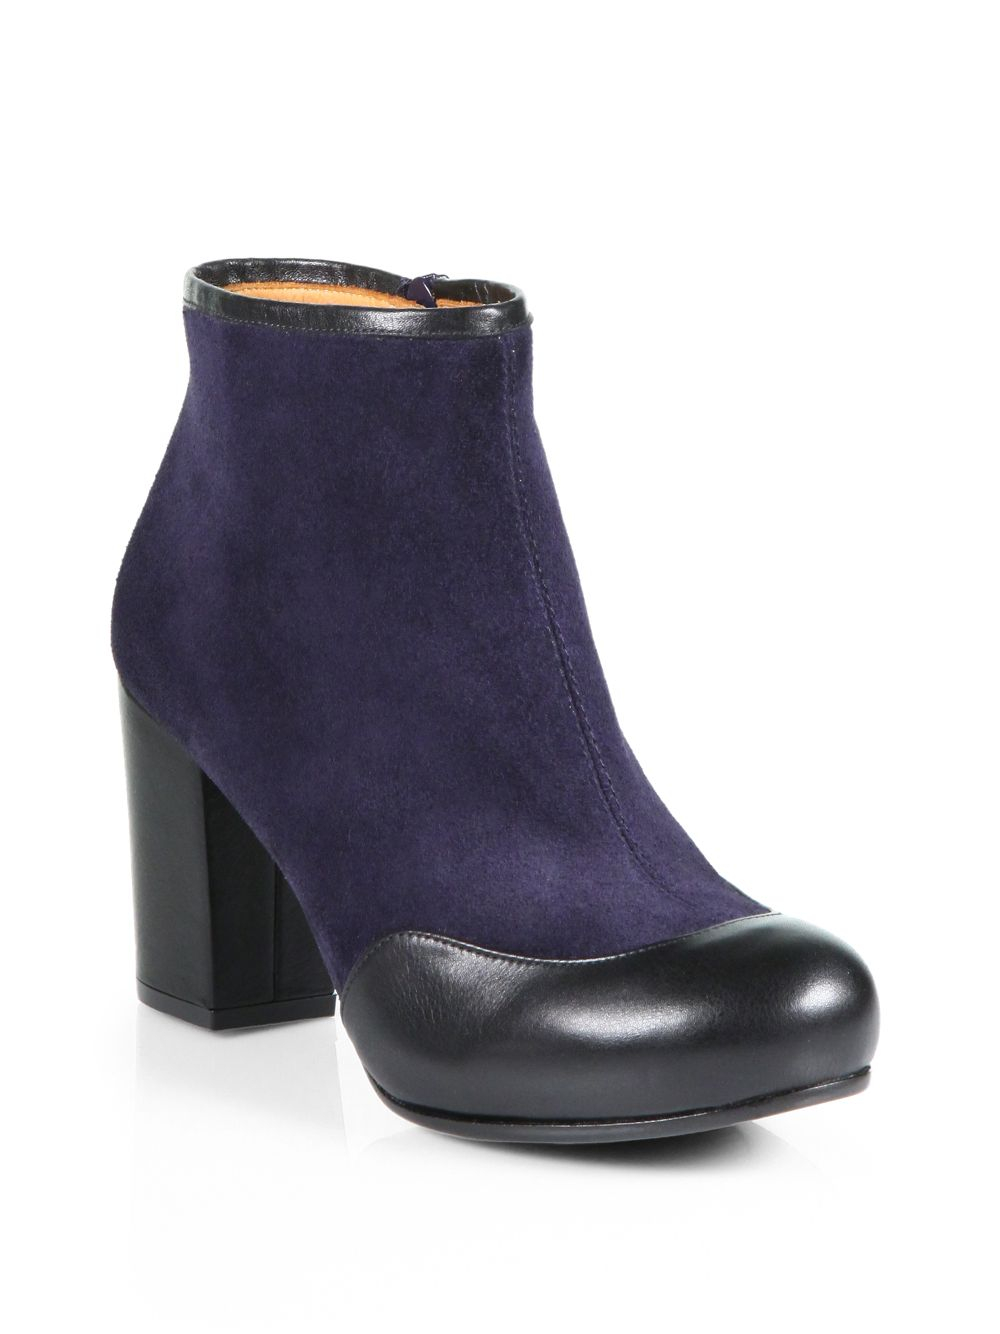 95e28b00a9ea Chie Mihara Tazmar Suede Leather Ankle Boots in Purple